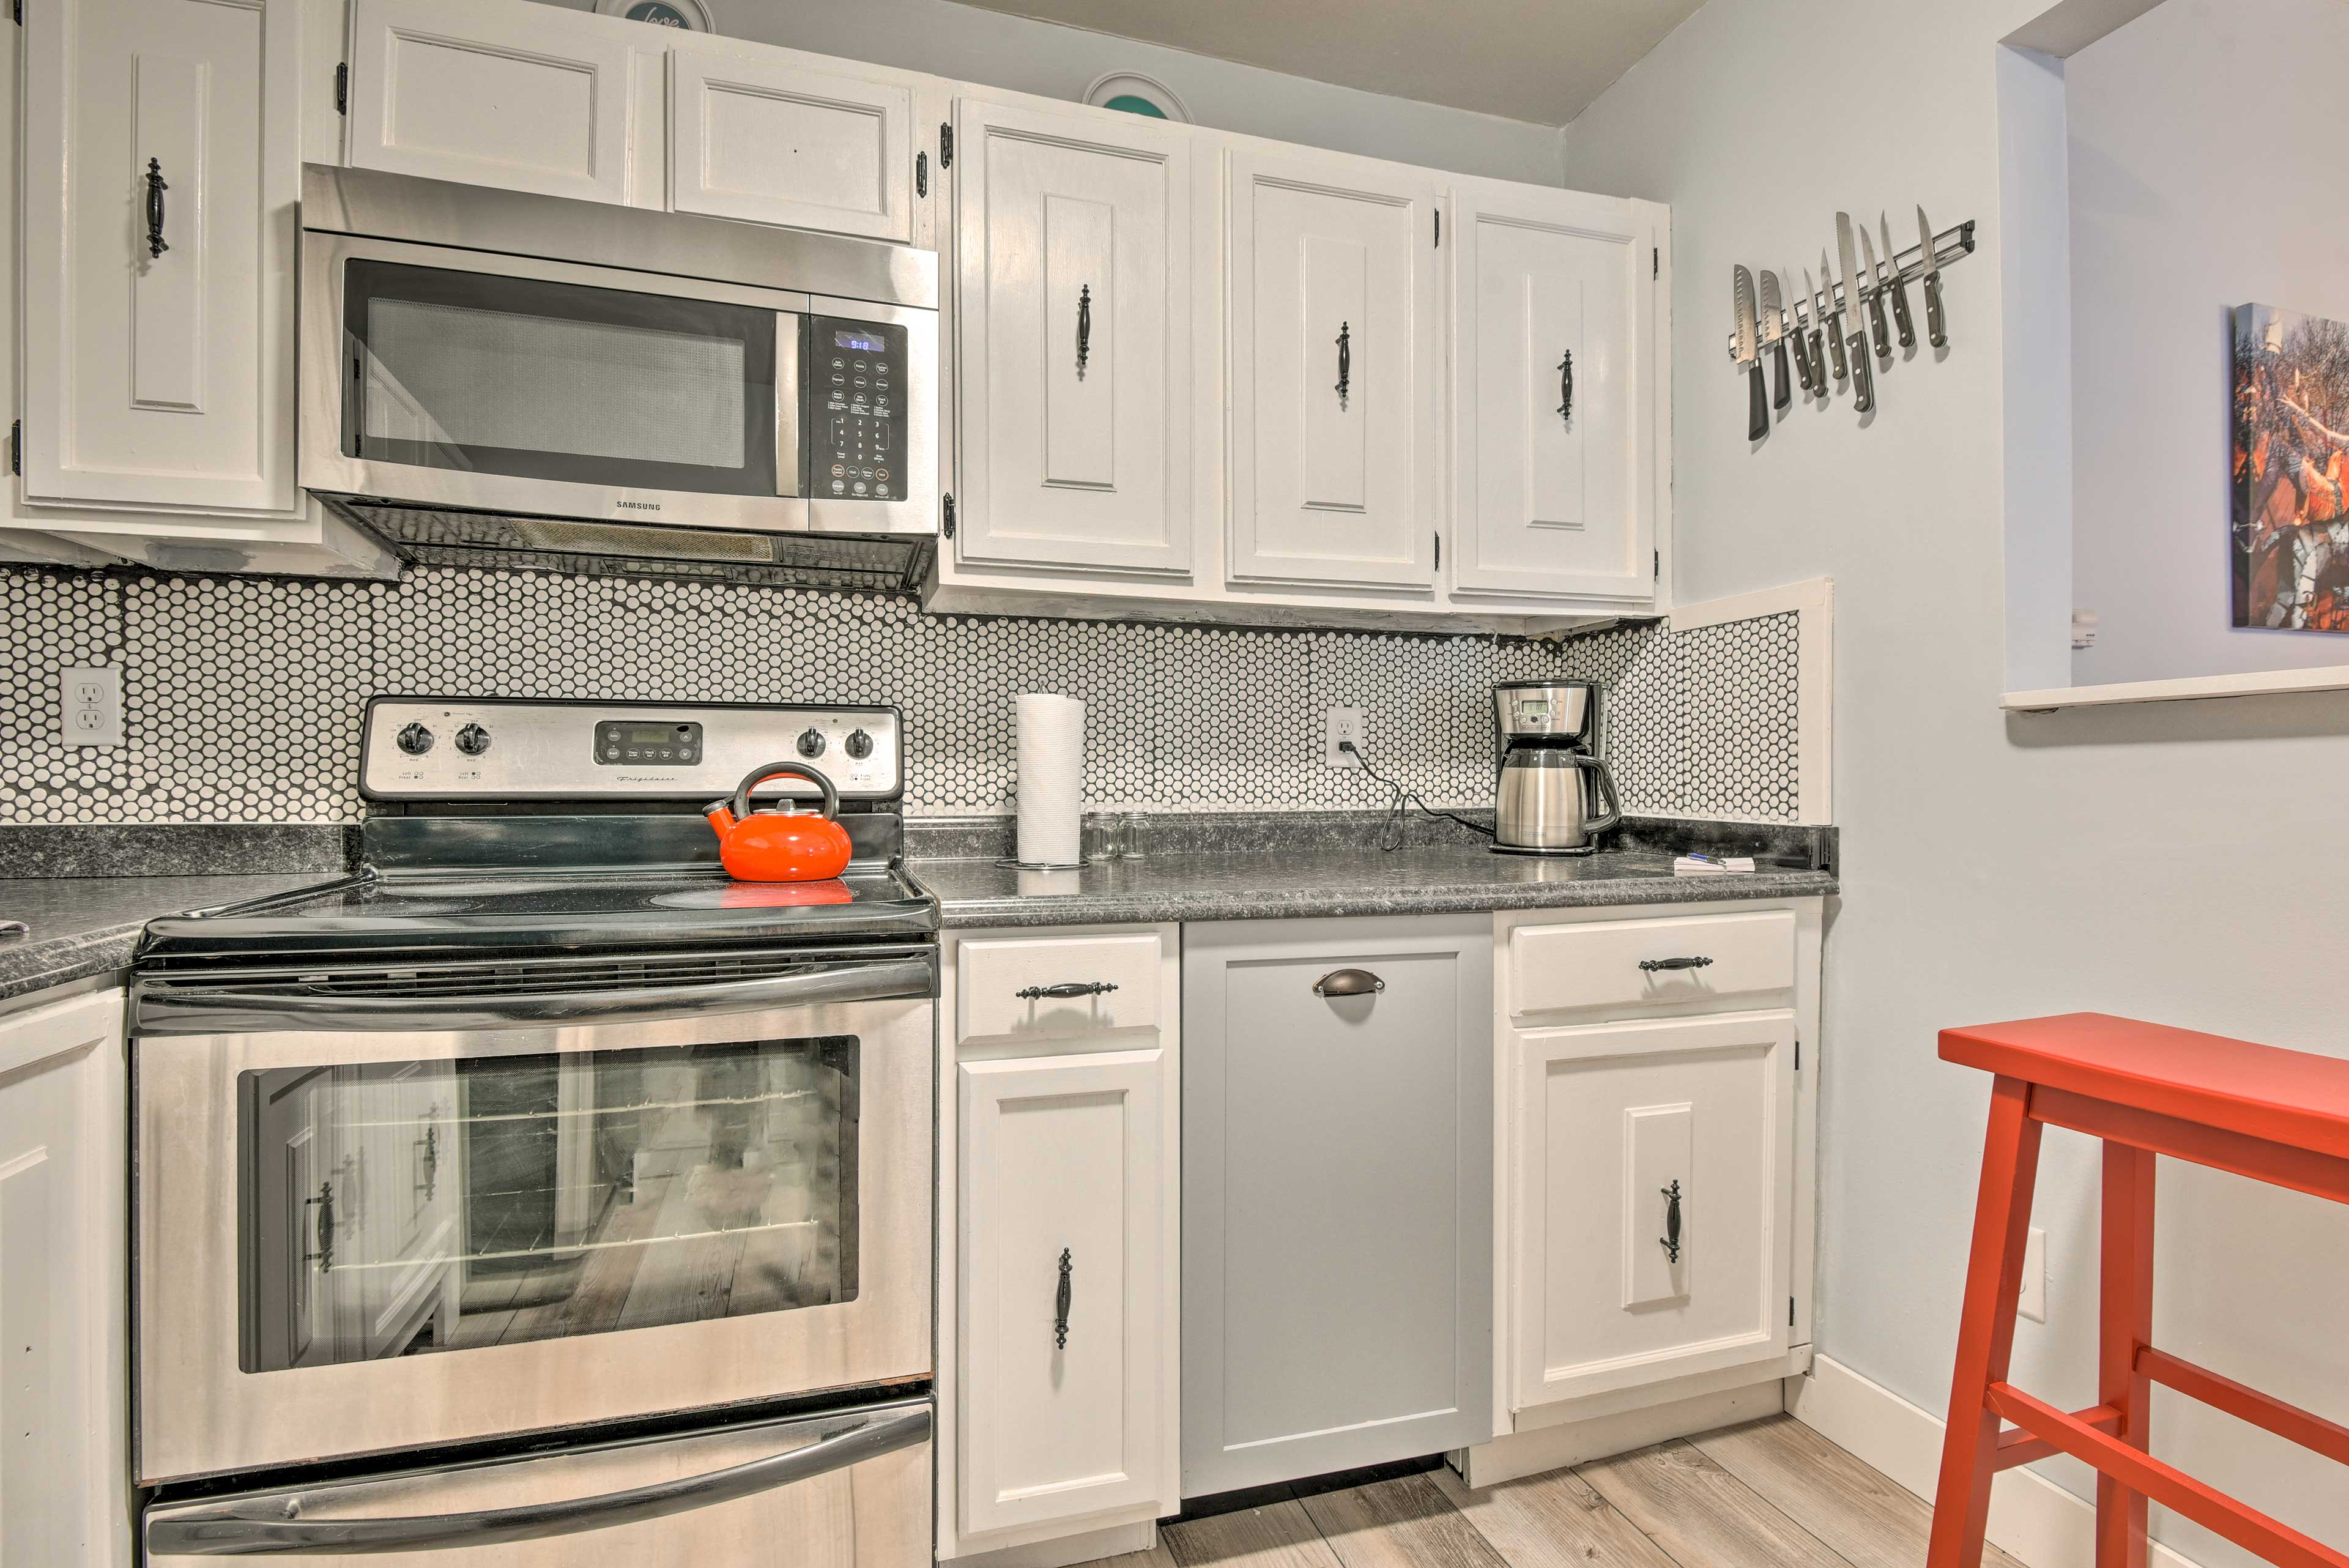 Whip up your signature dish with the stainless steel appliances.